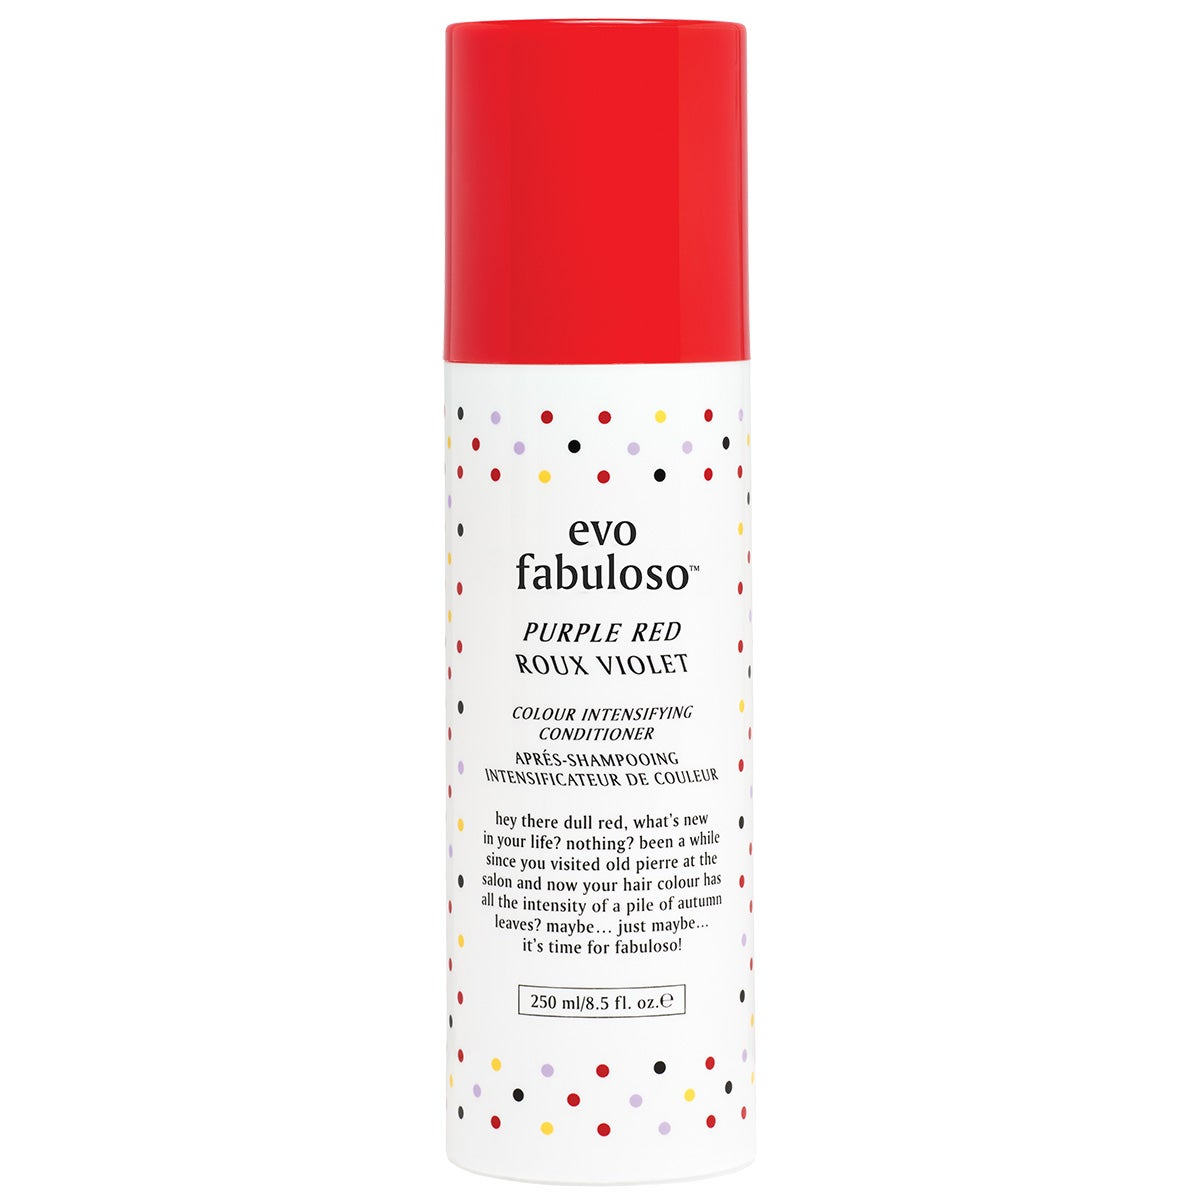 evo Fabuloso Colour Intensifying Conditioner - Purple Red